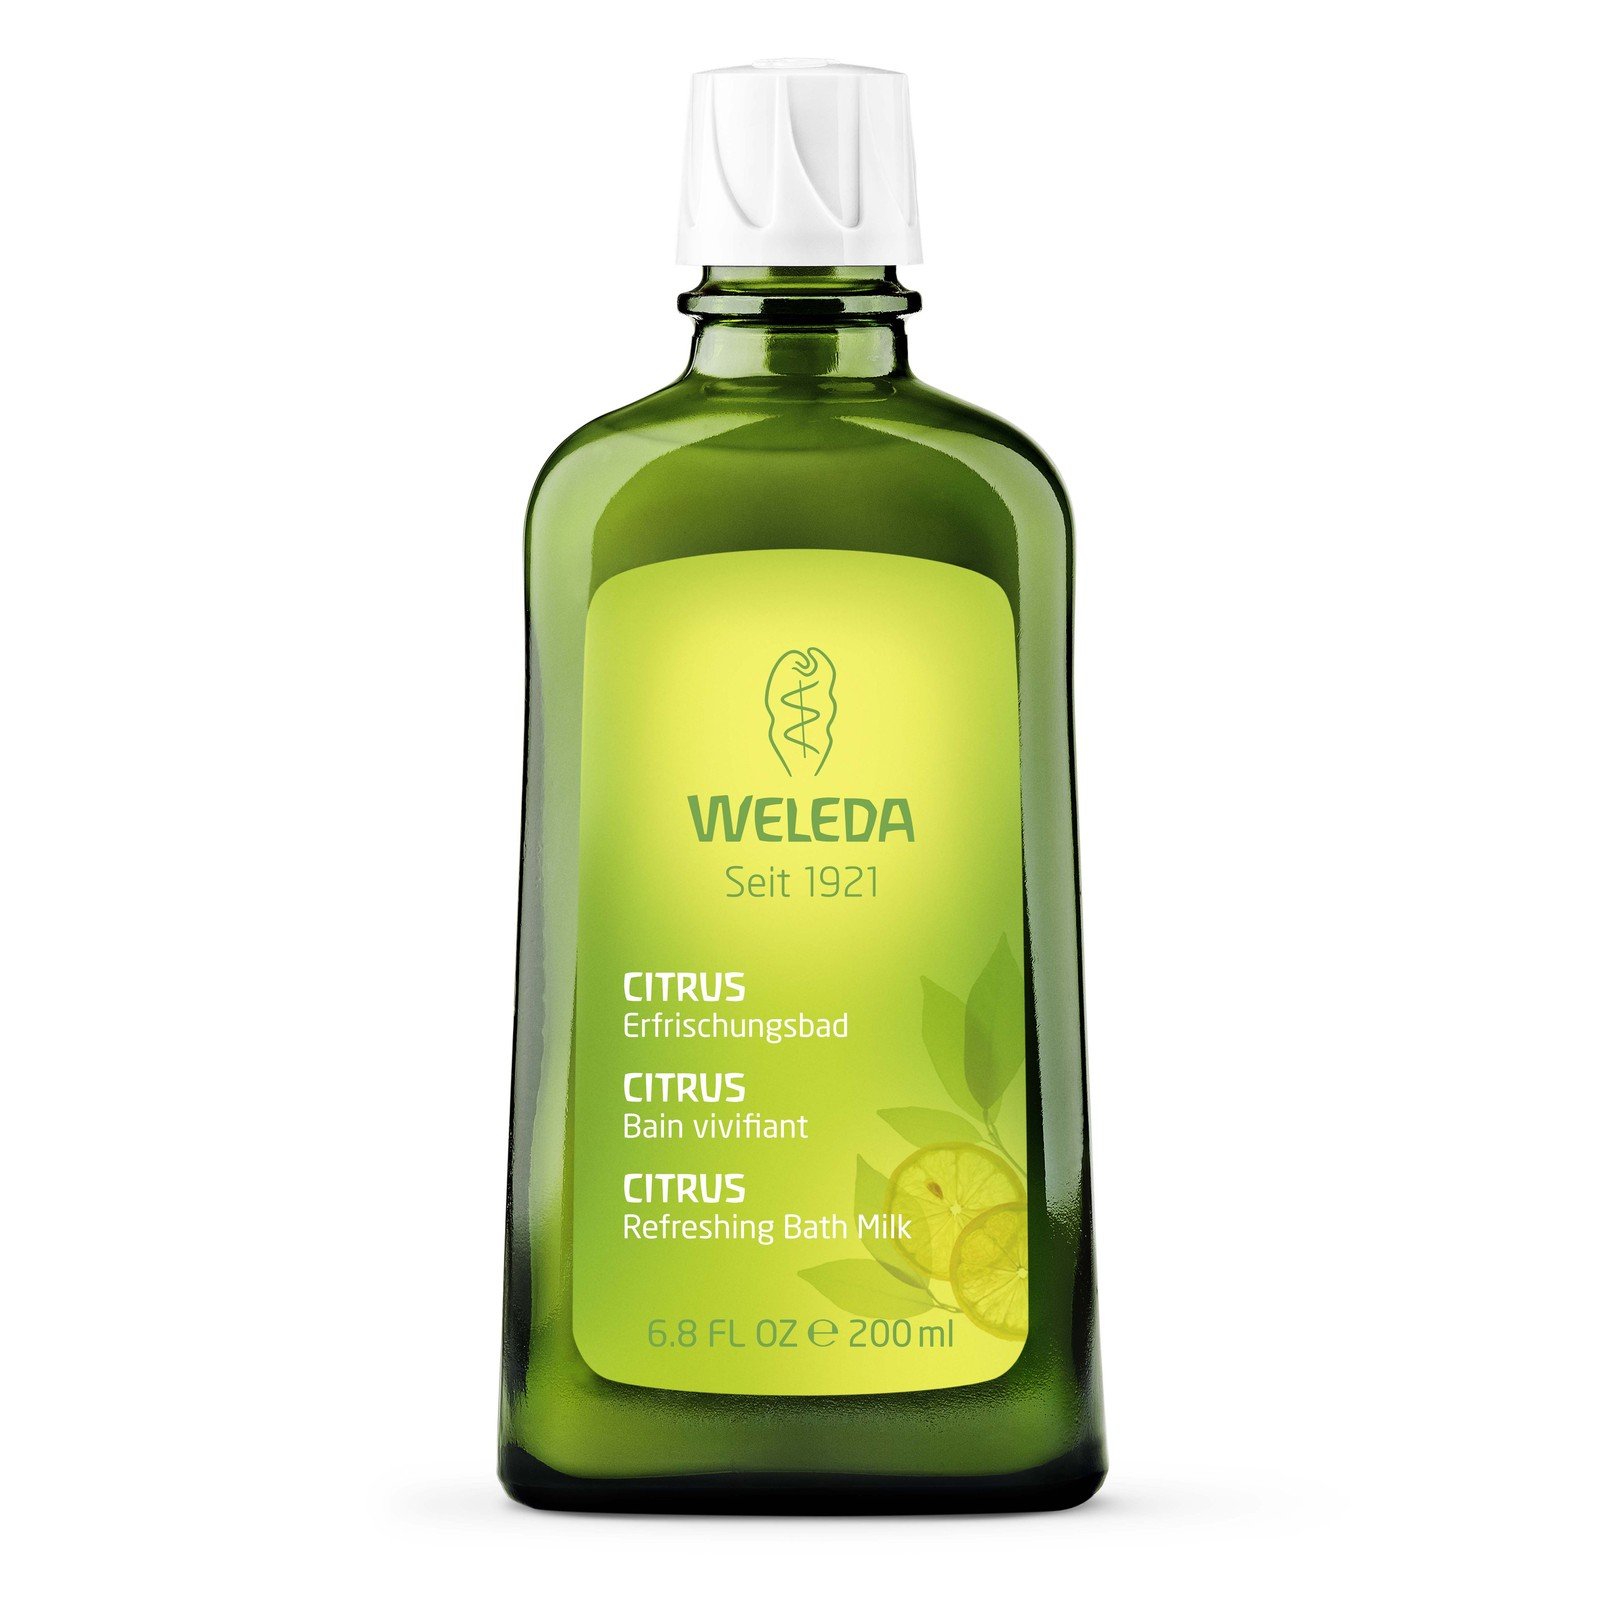 Weleda Citrus Refreshing Bath Milk